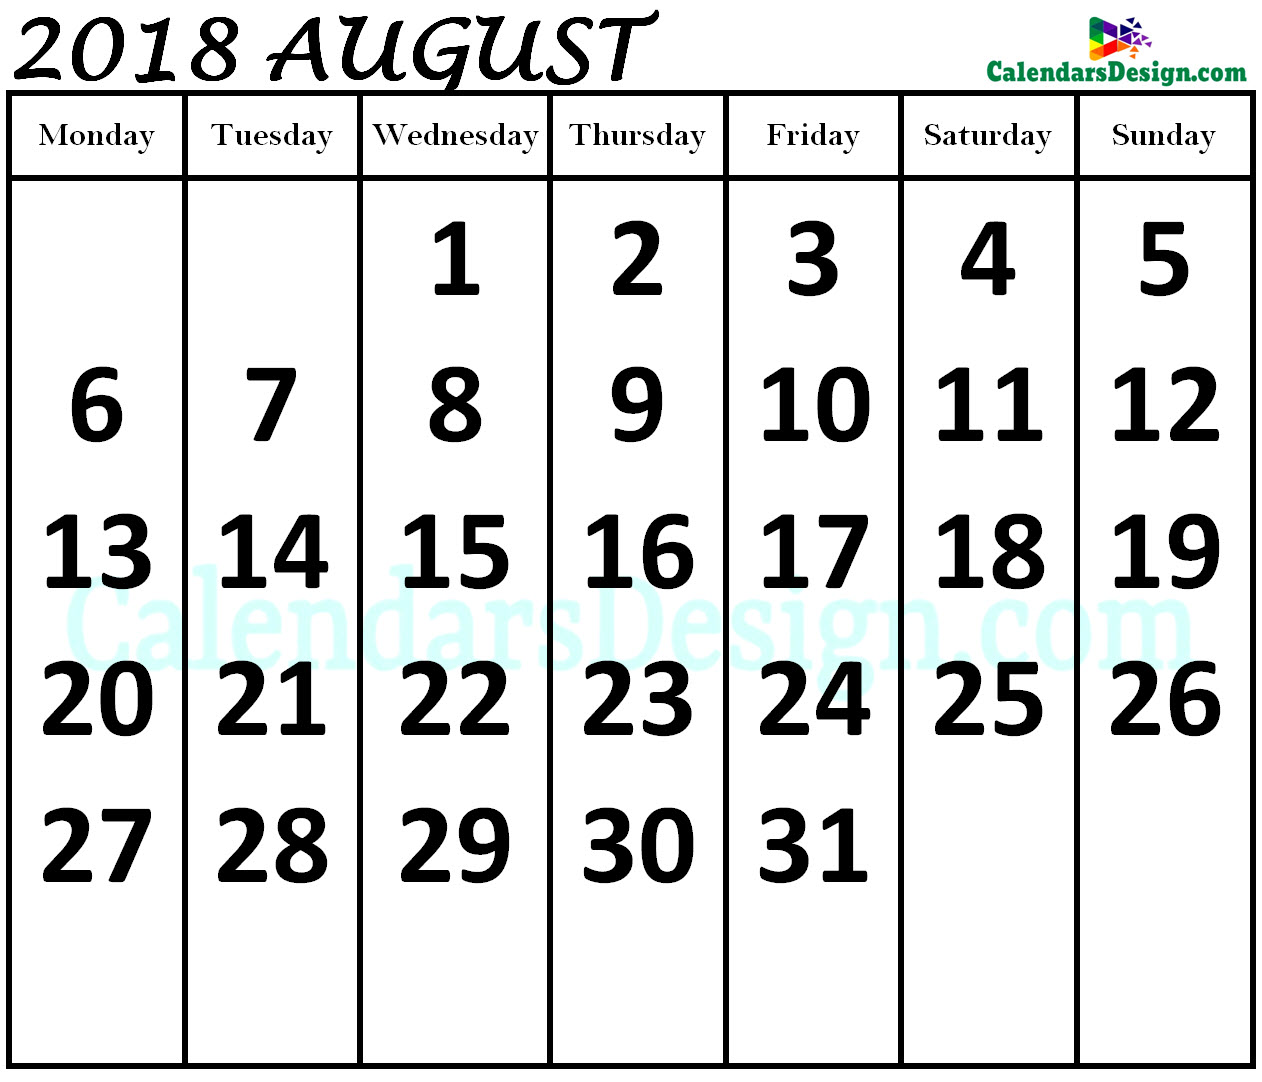 August 2018 Calendar in Page